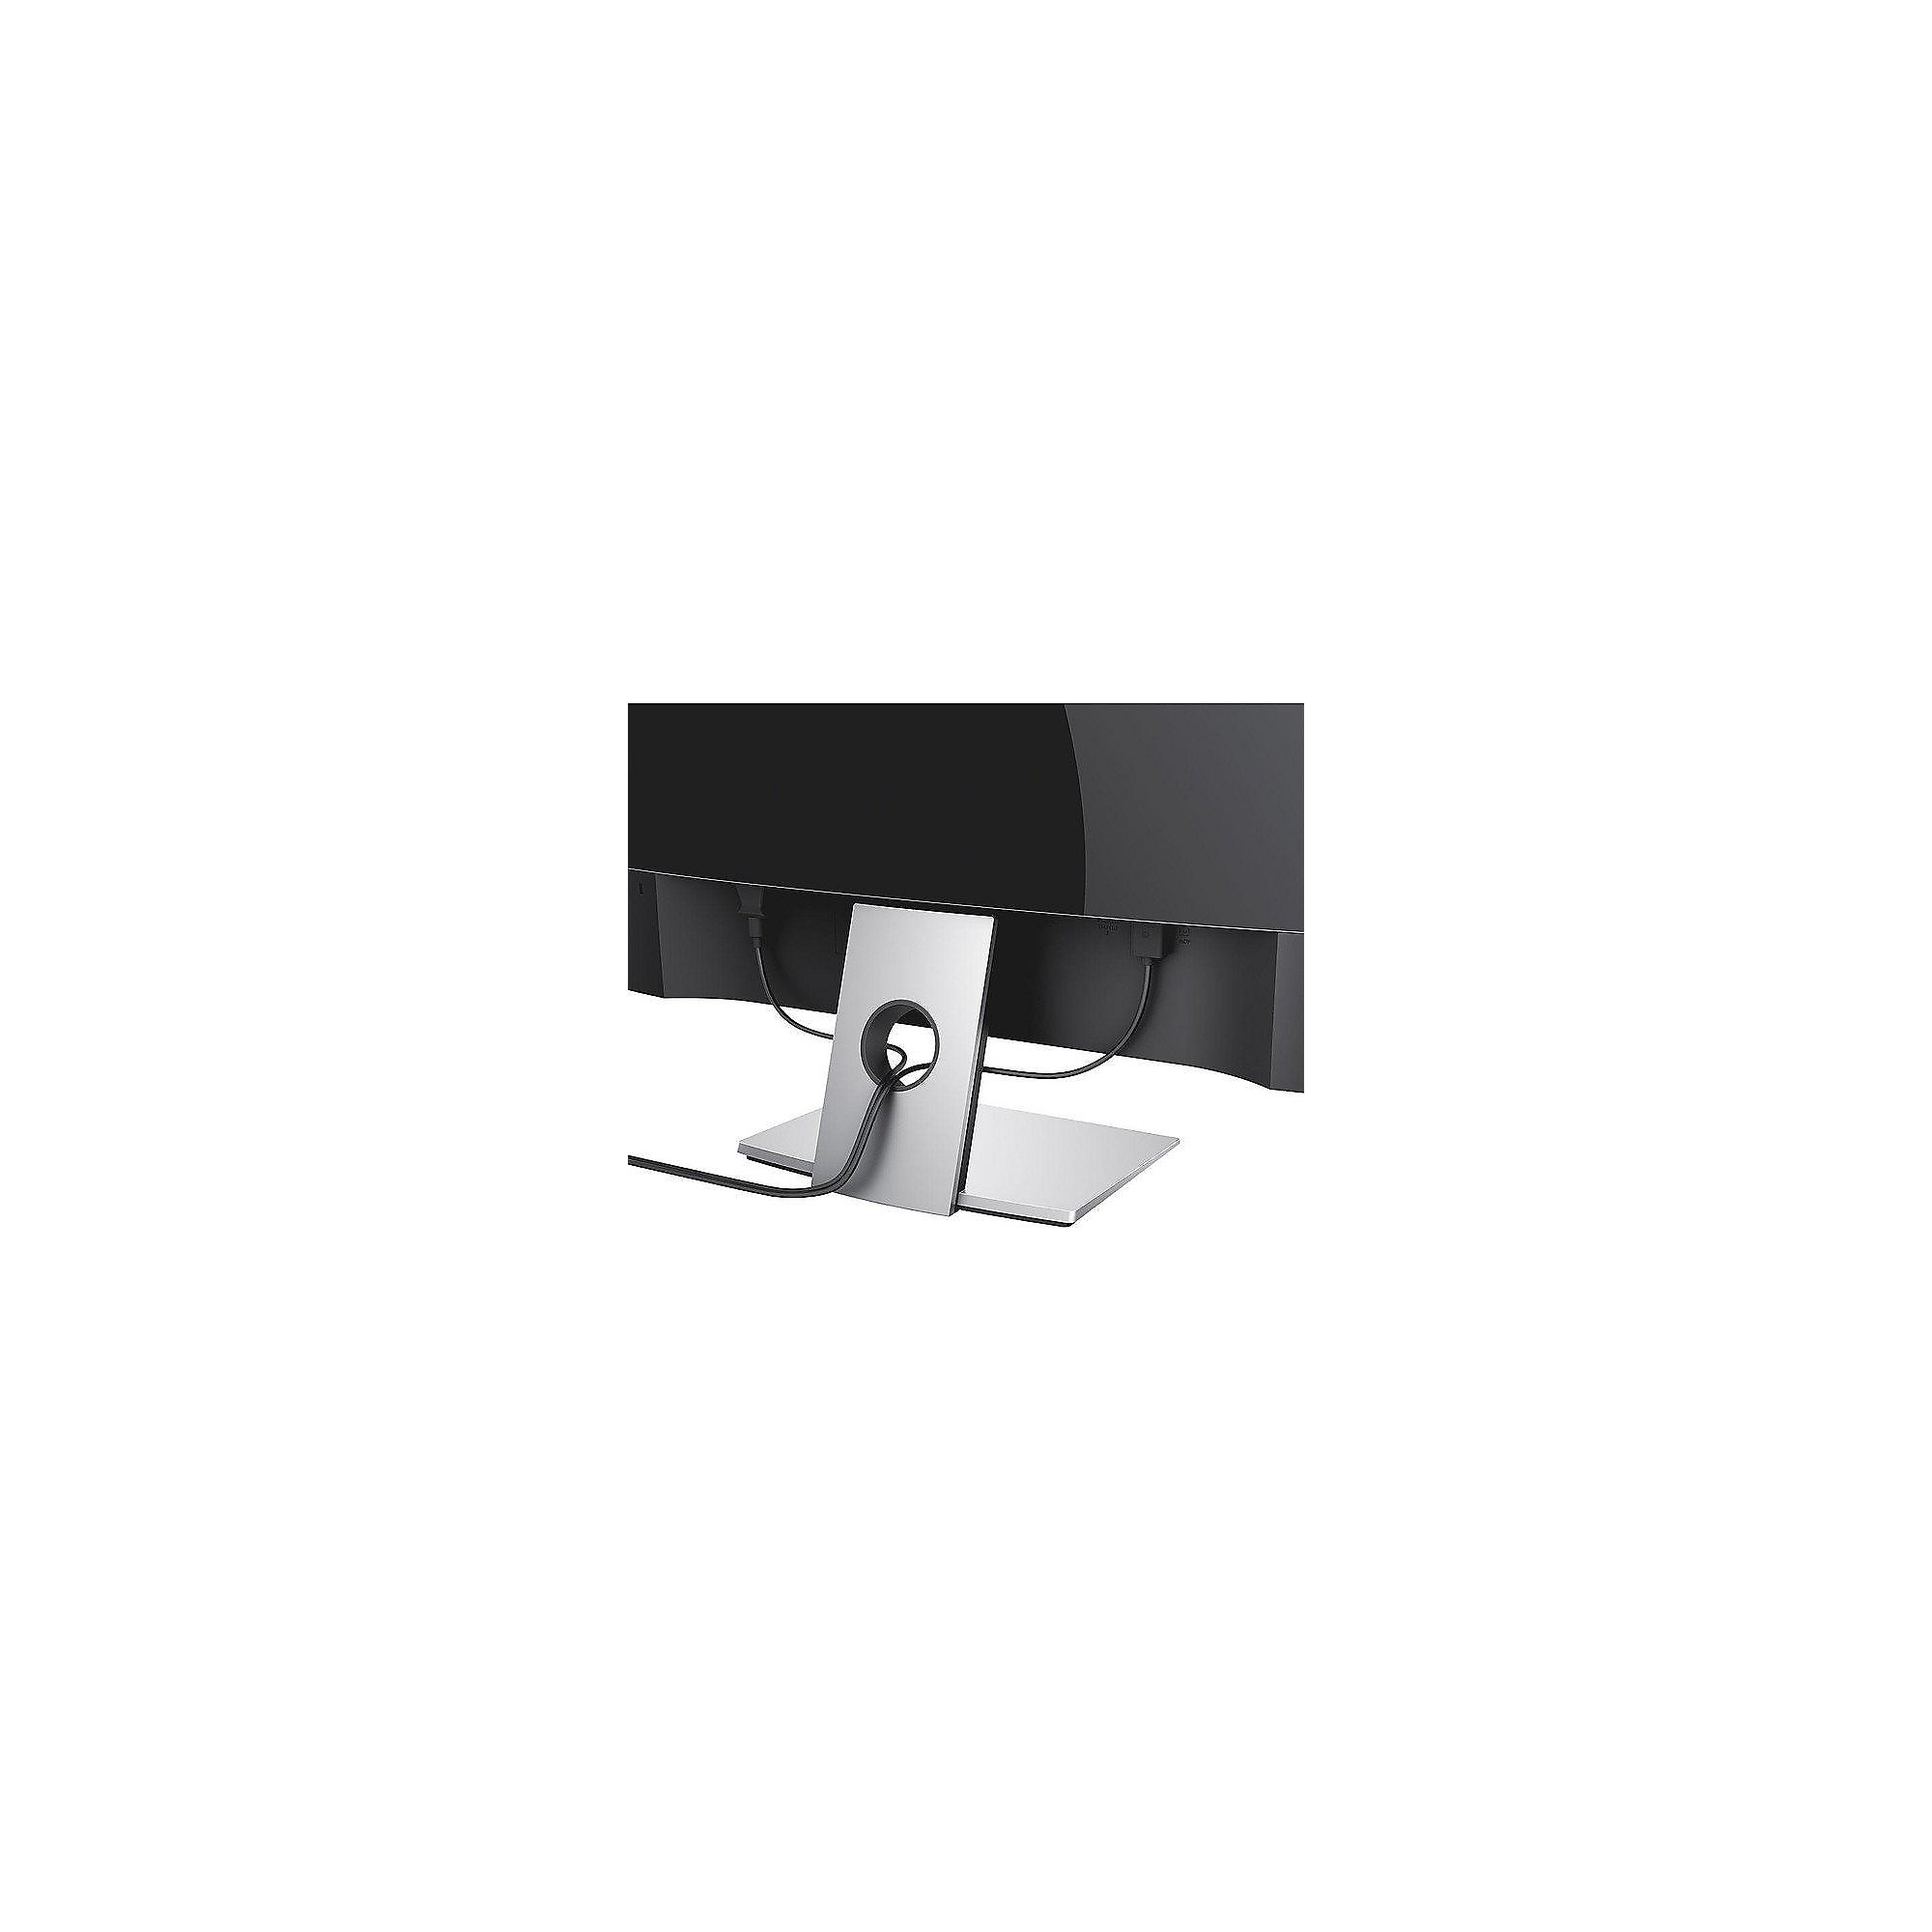 "DELL UltraSharp S2817Q 71,1cm(28"") 16:9 UHD 4K HDMI/MHL/DP/USB 2ms"